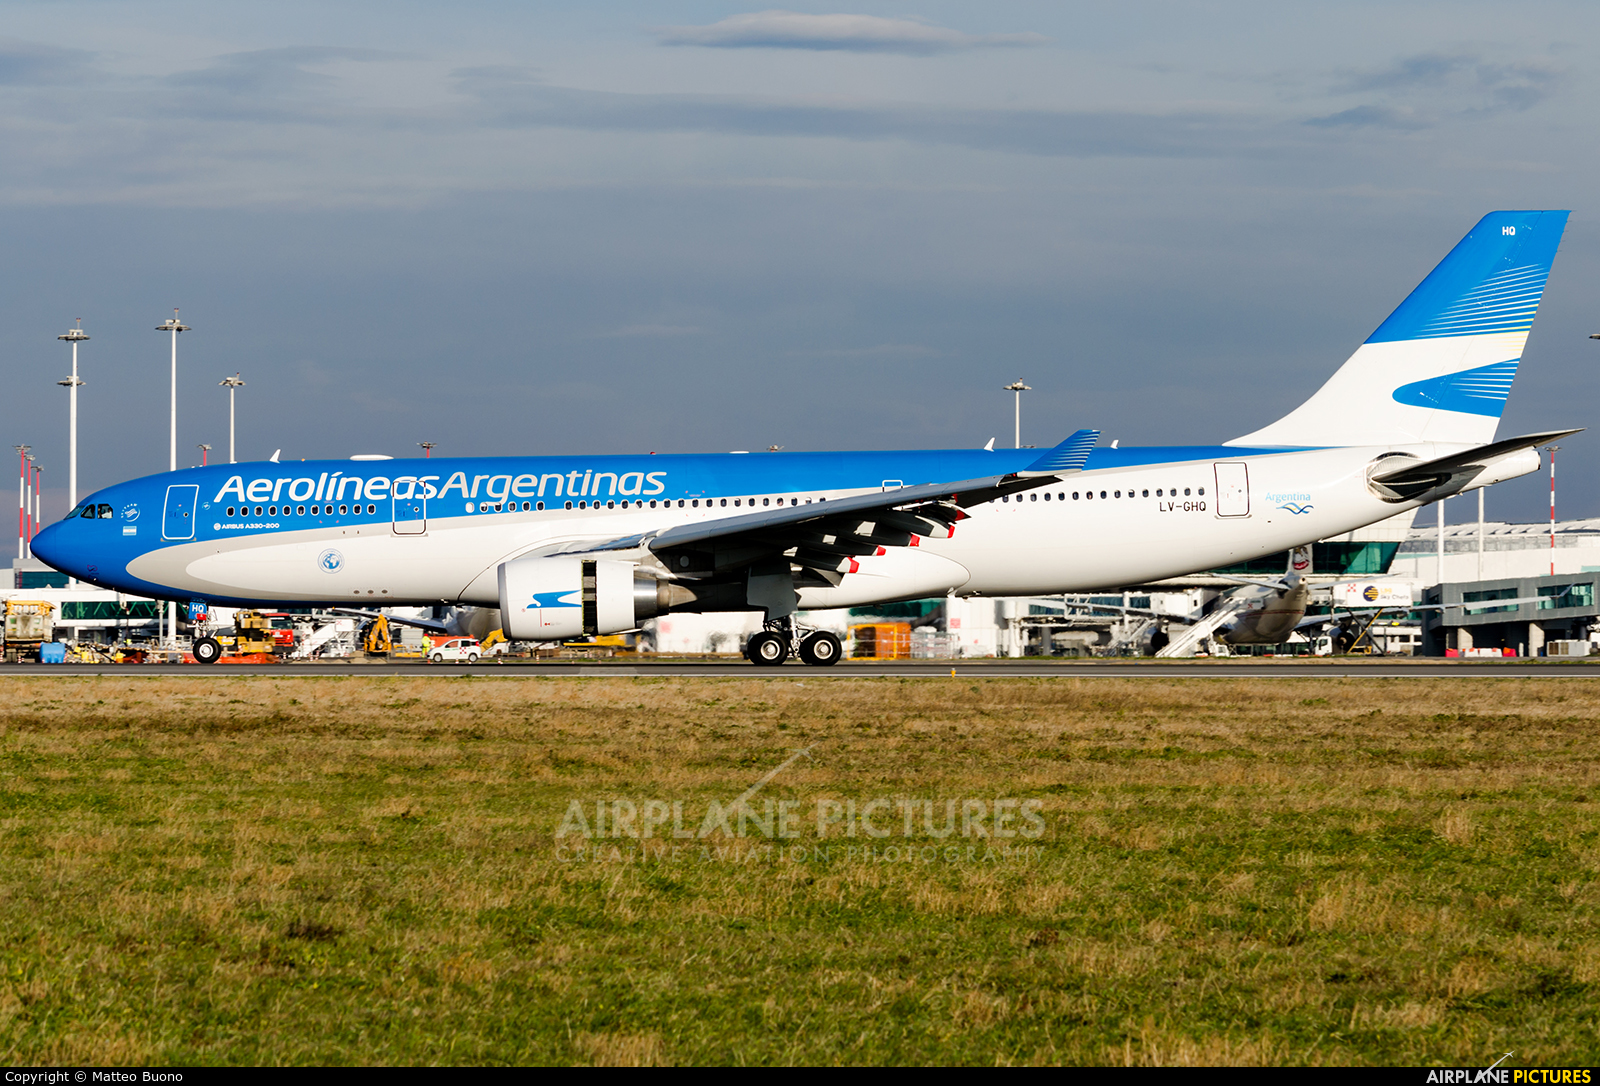 Aerolineas Argentinas LV-GHQ aircraft at Rome - Fiumicino